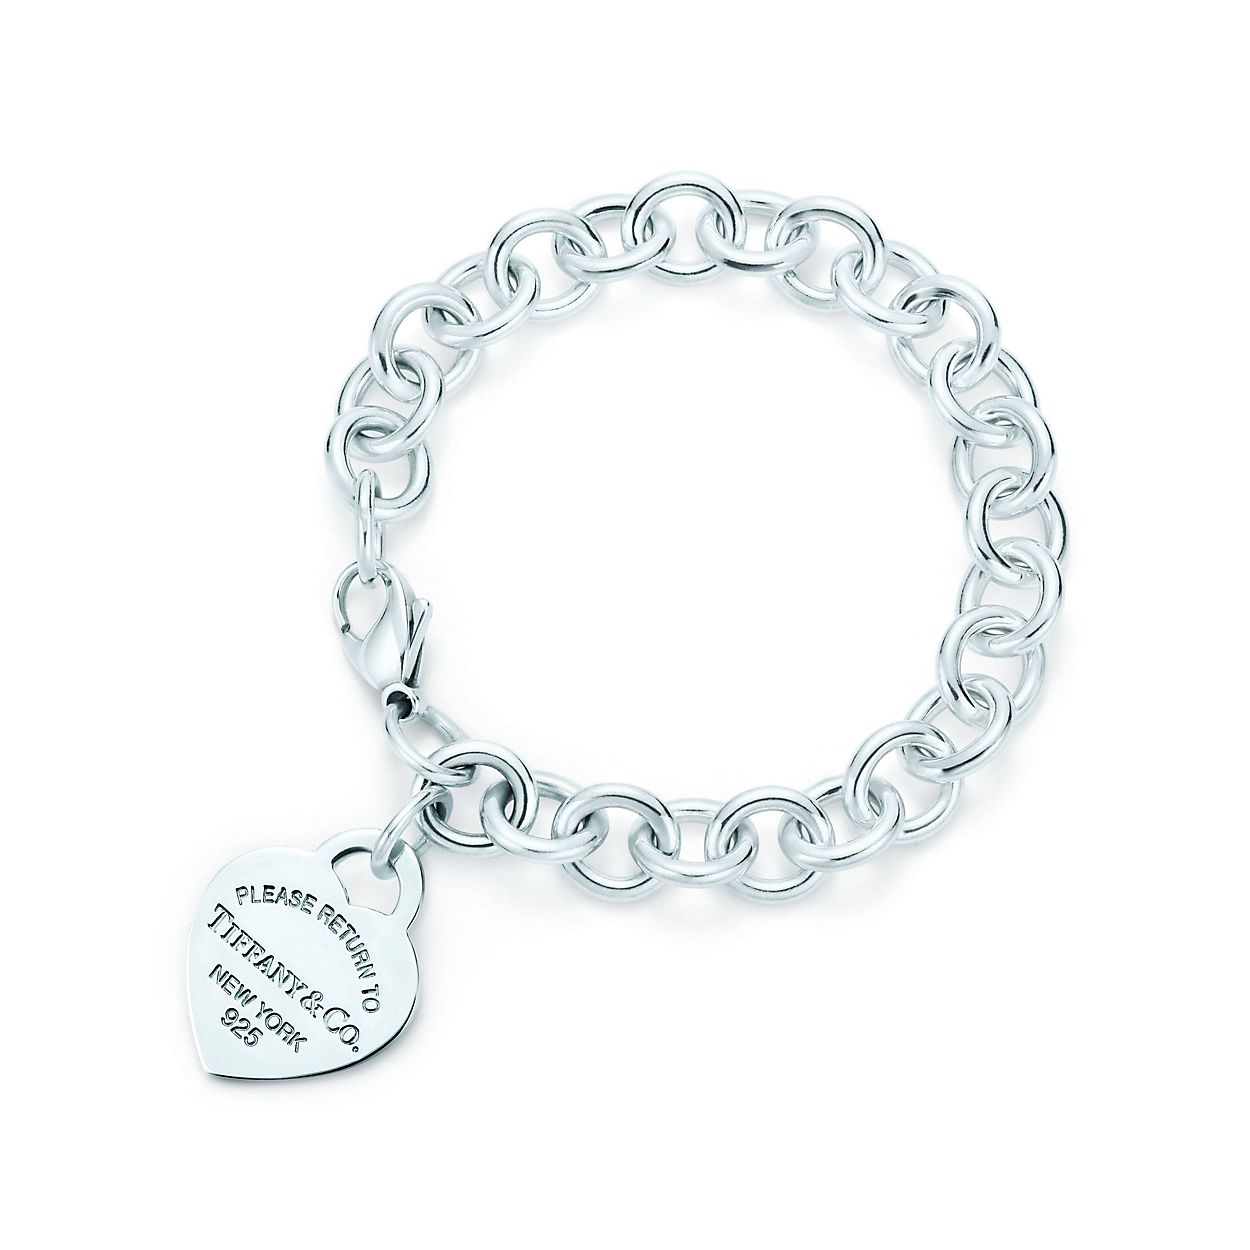 collective bracelet products supernatural bracelets last jewellery call protection charm